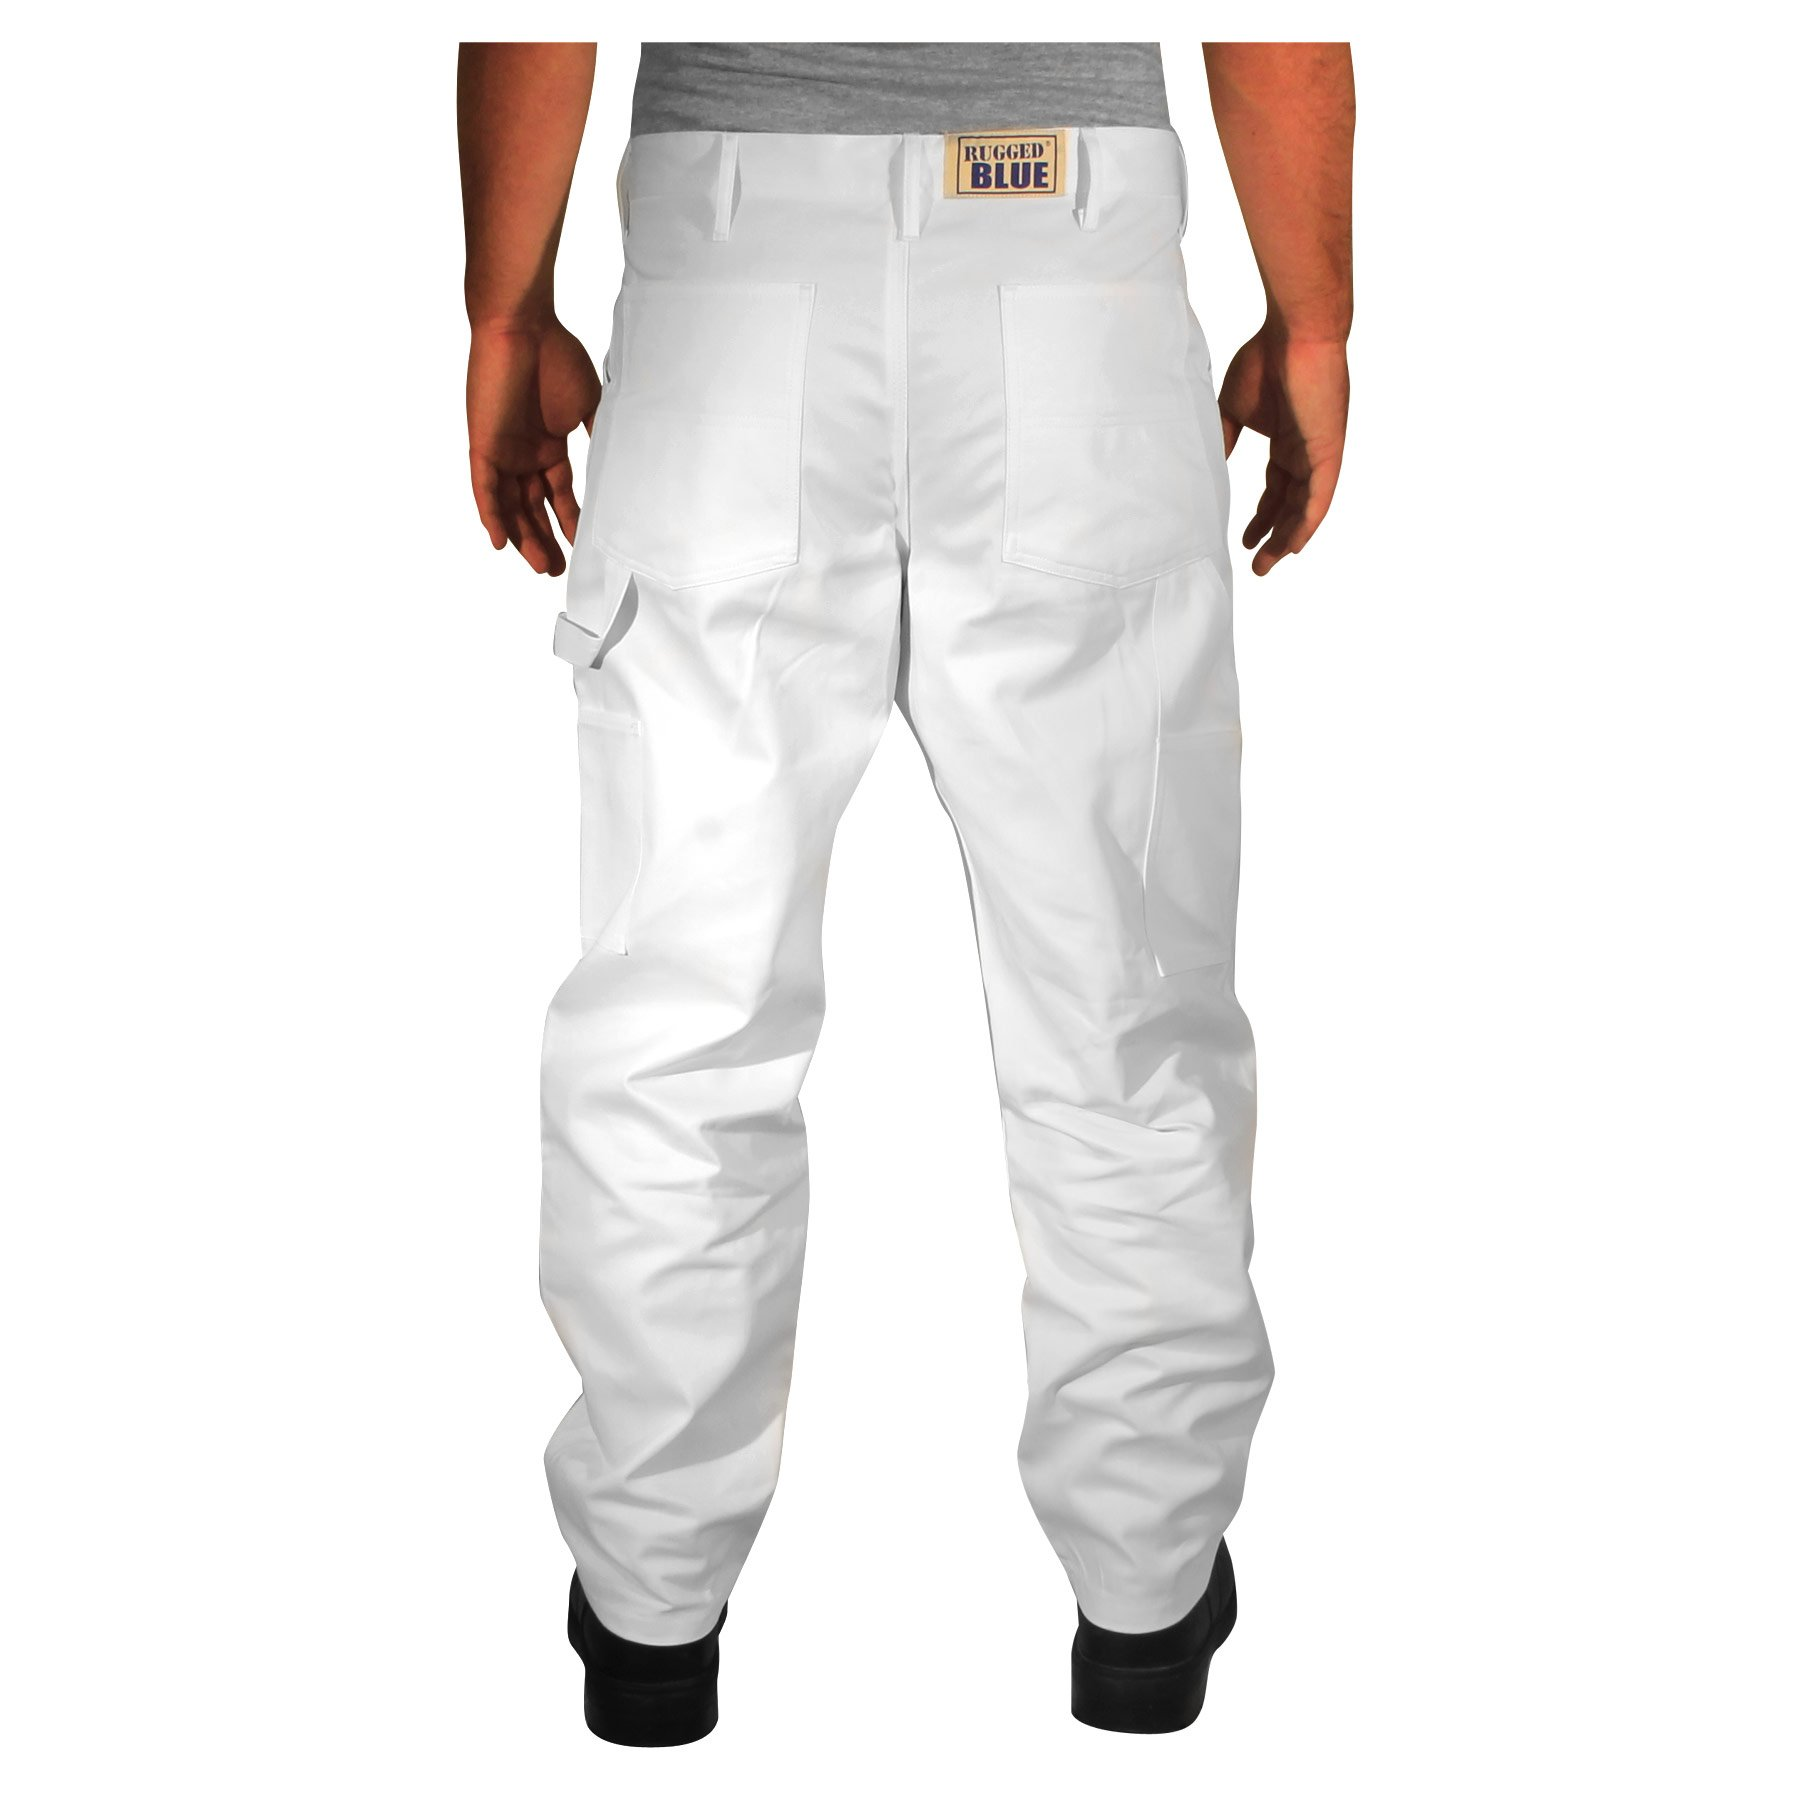 Rugged Blue CSGPTWP1000025168-WHT-48X36 Double Knee Painters Pants, English, Cotton, 48 x 36, White by Rugged Blue (Image #2)